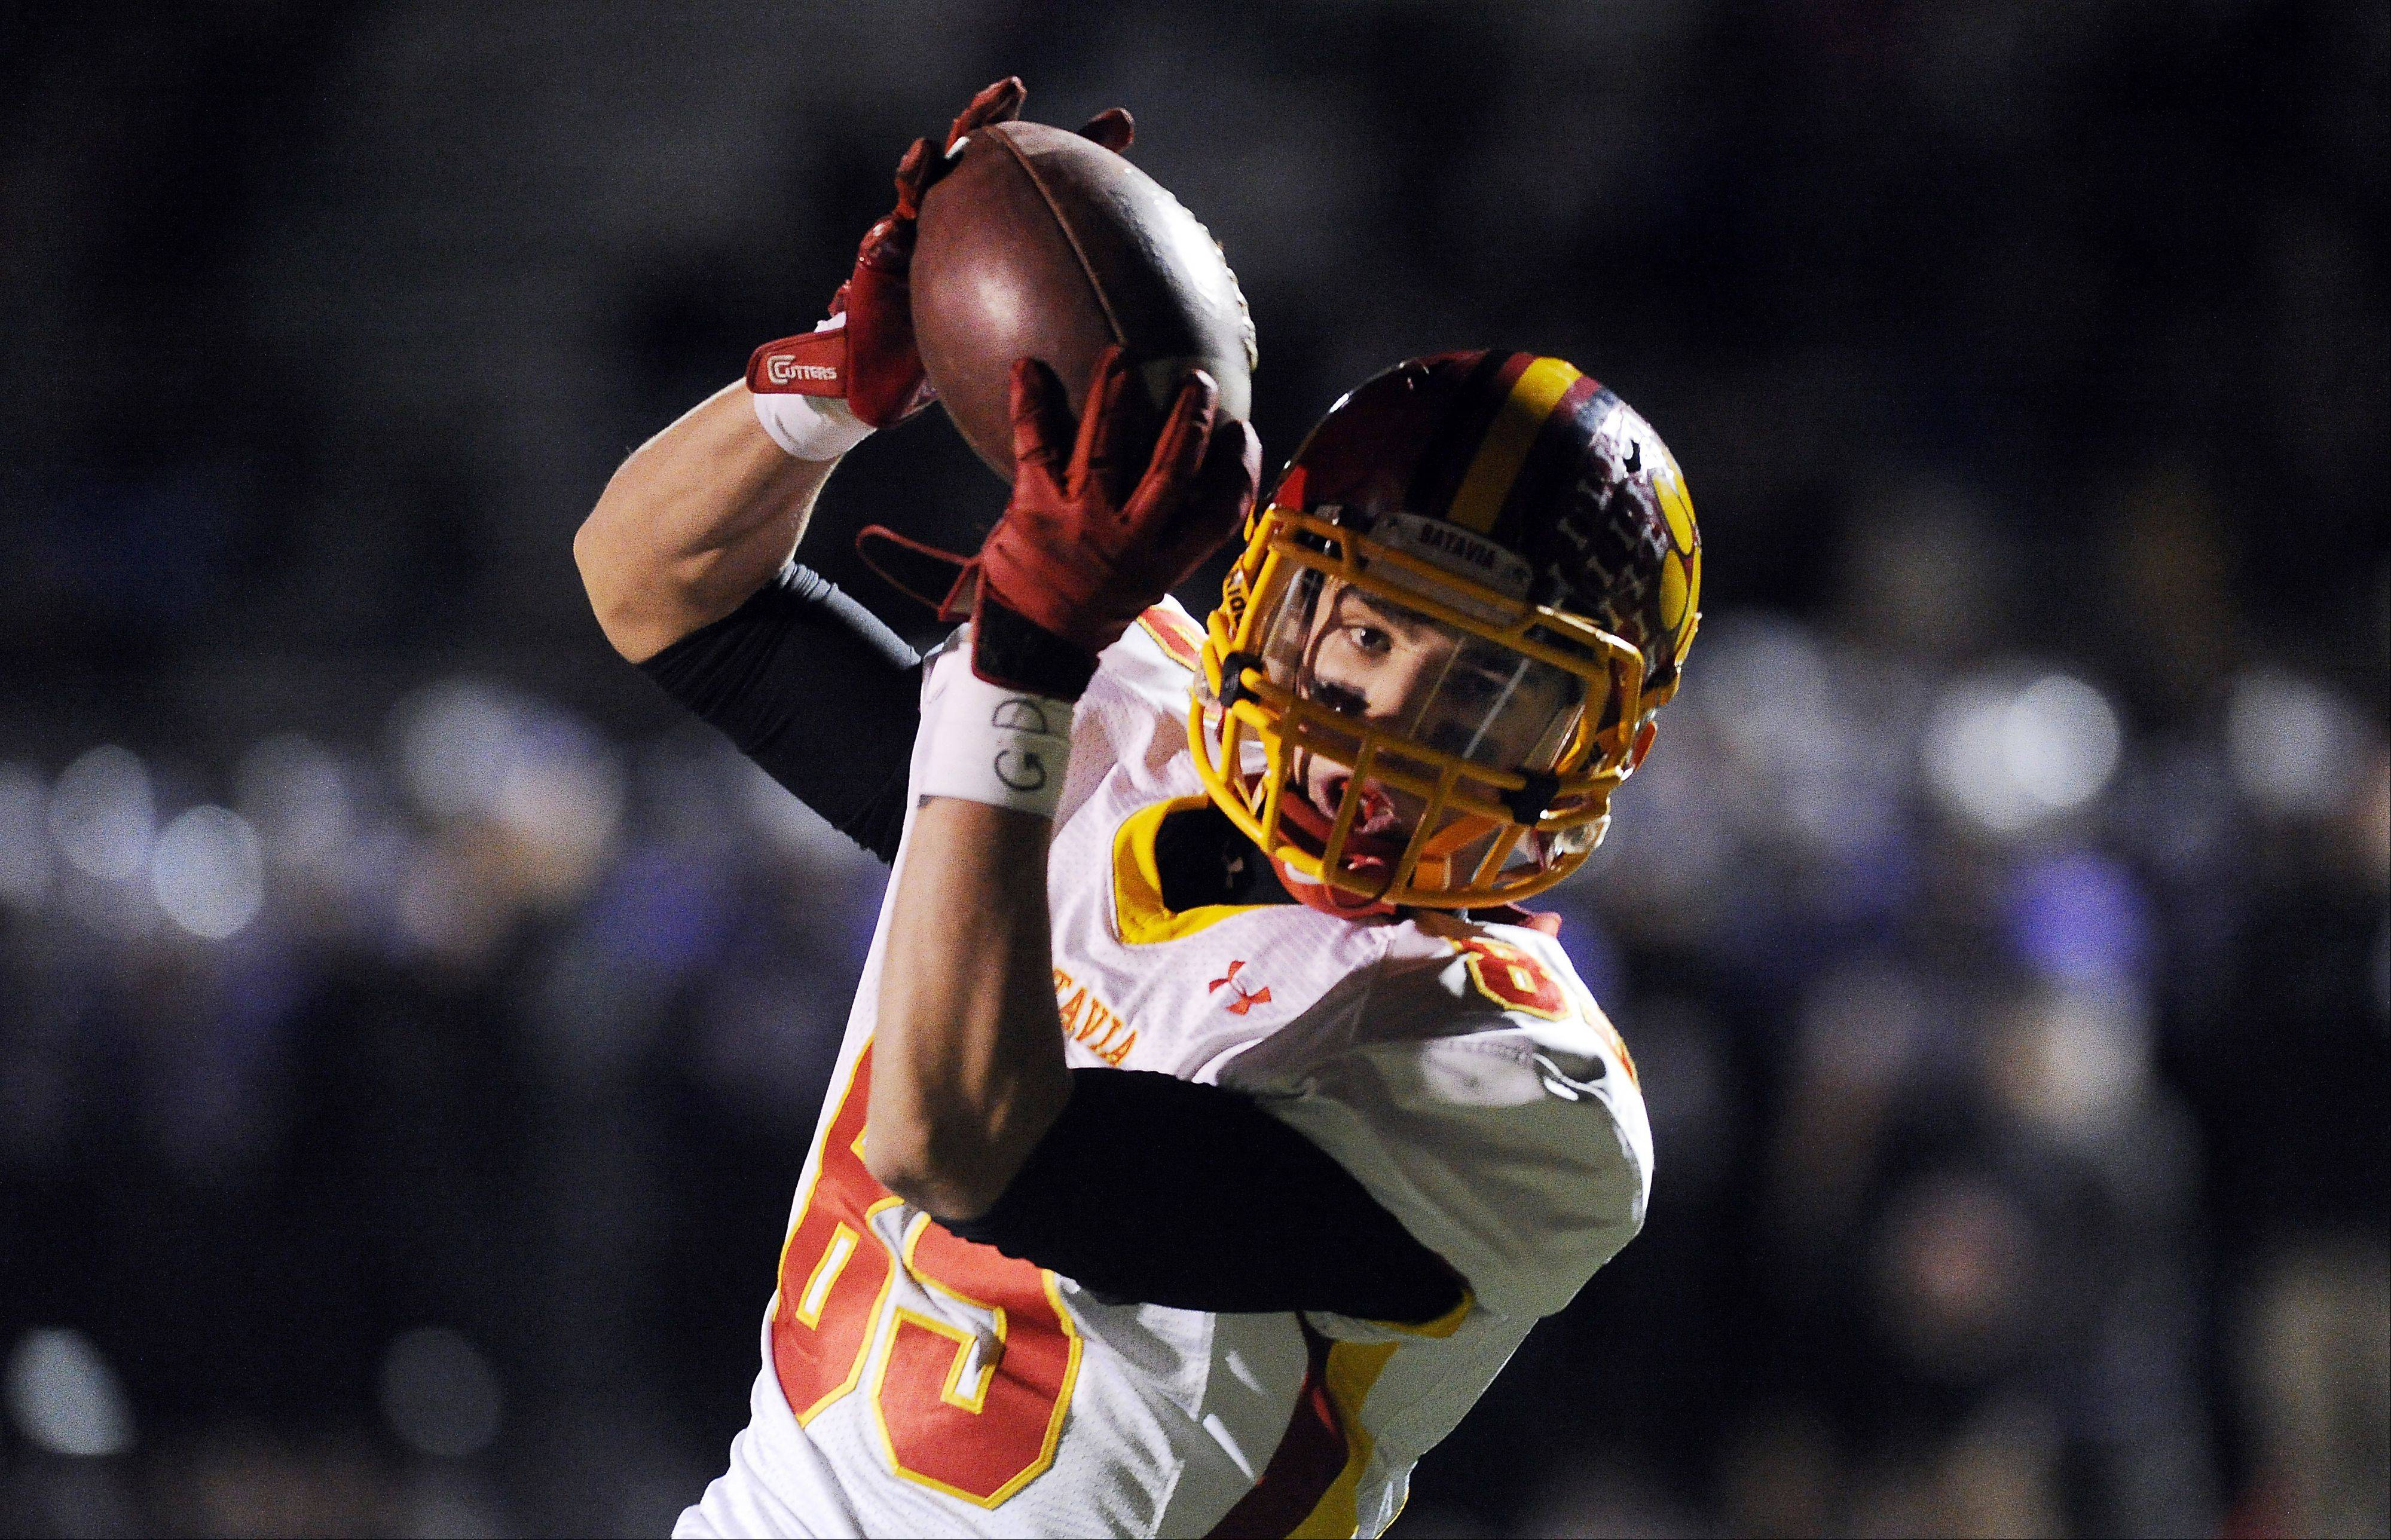 Batavia's Jordan Zwart hauls in a second-quarter touchdown as Rolling Meadows' defense was unable to stop him in the second-round game of the Class 6A playoffs at Rolling Meadows High School on Saturday.